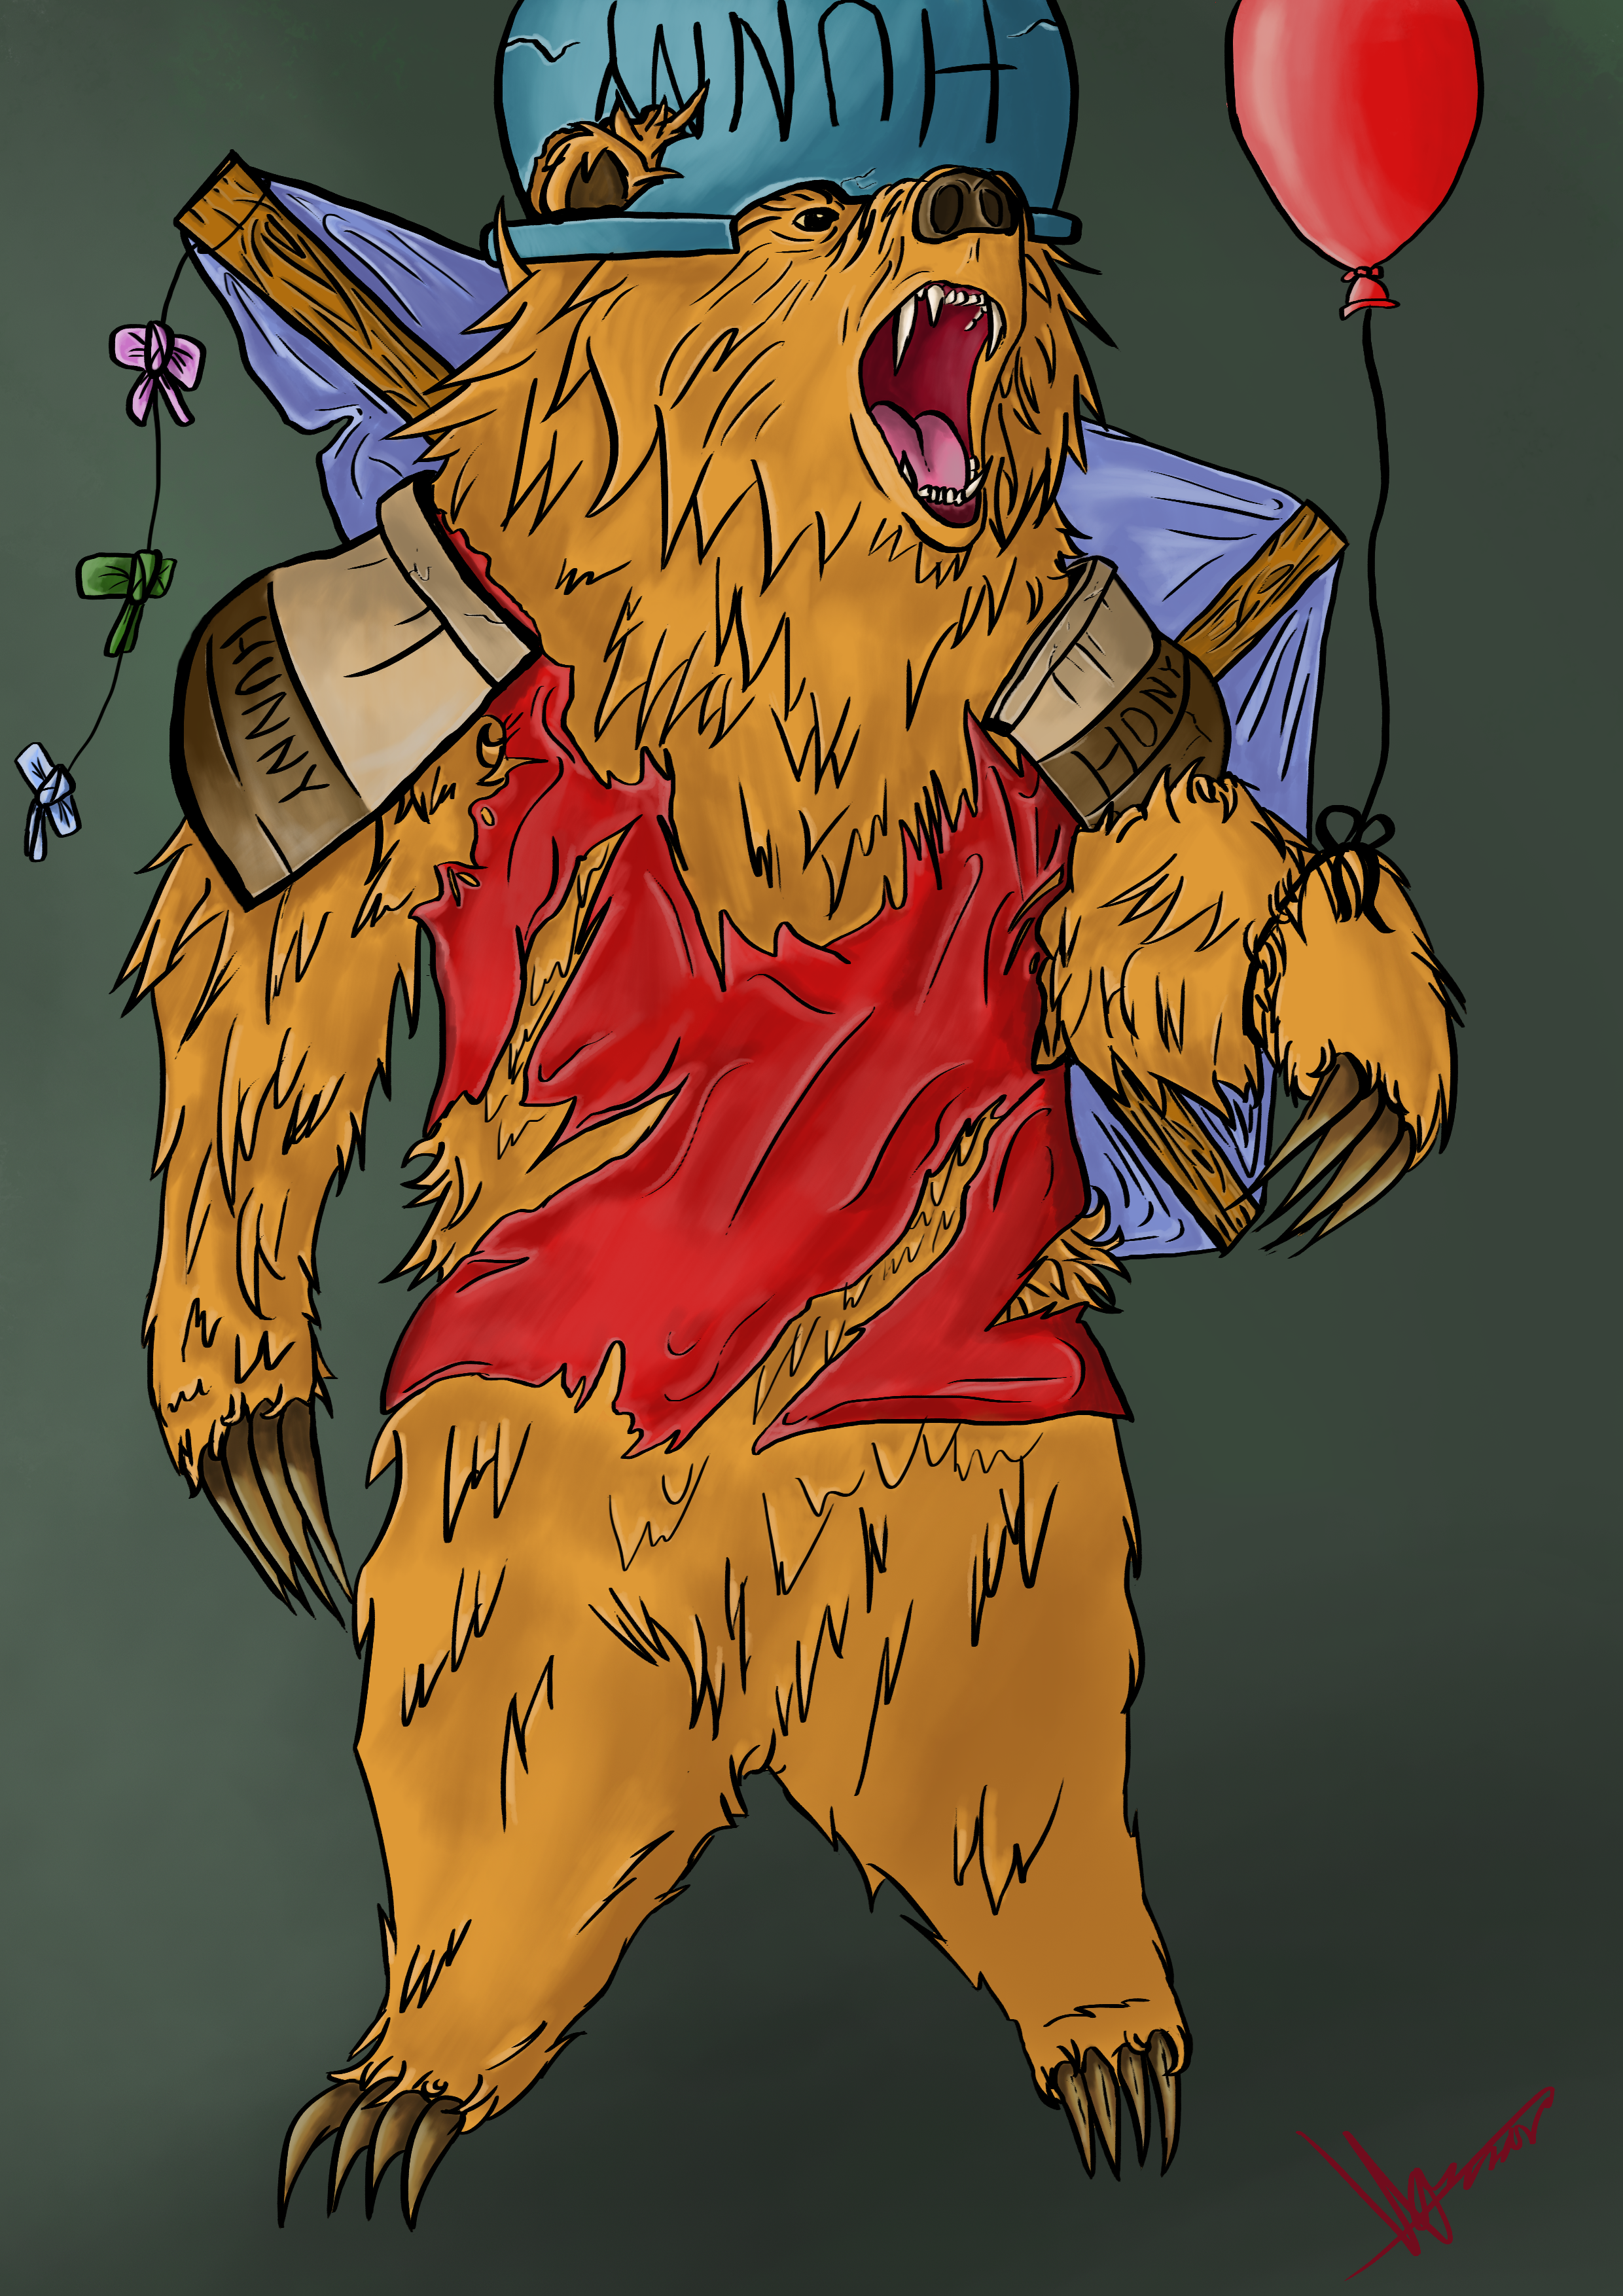 Winnie the Pooh if he was level 99